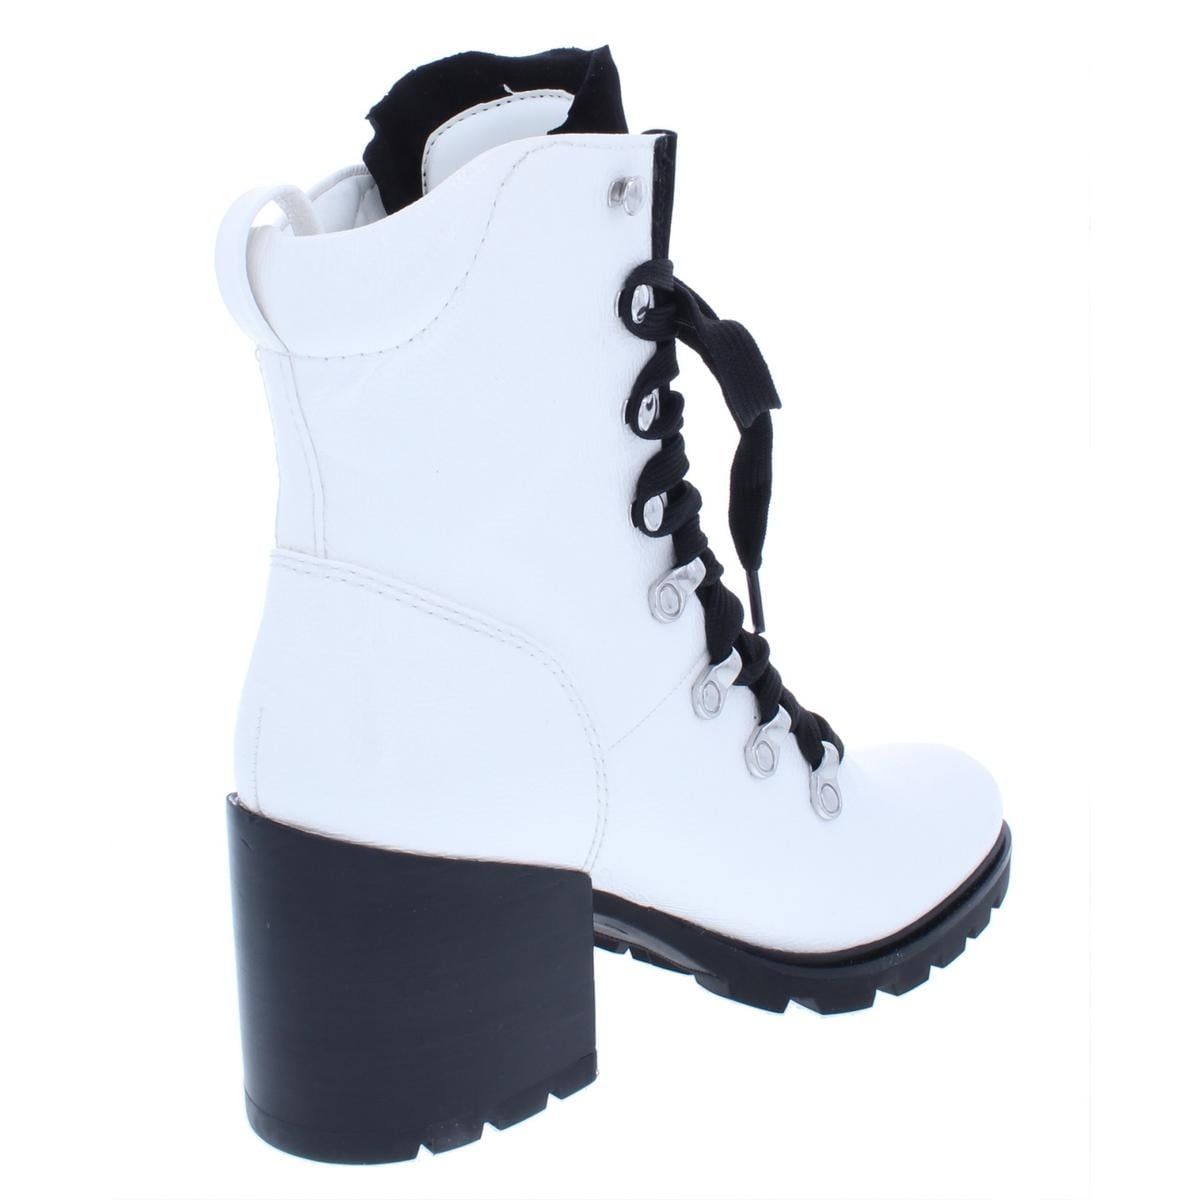 0c9d23ac27764 Shop Kendall + Kylie Womens Spencer4 Combat Boots Patent Leather Block - Free  Shipping Today - Overstock - 26063518